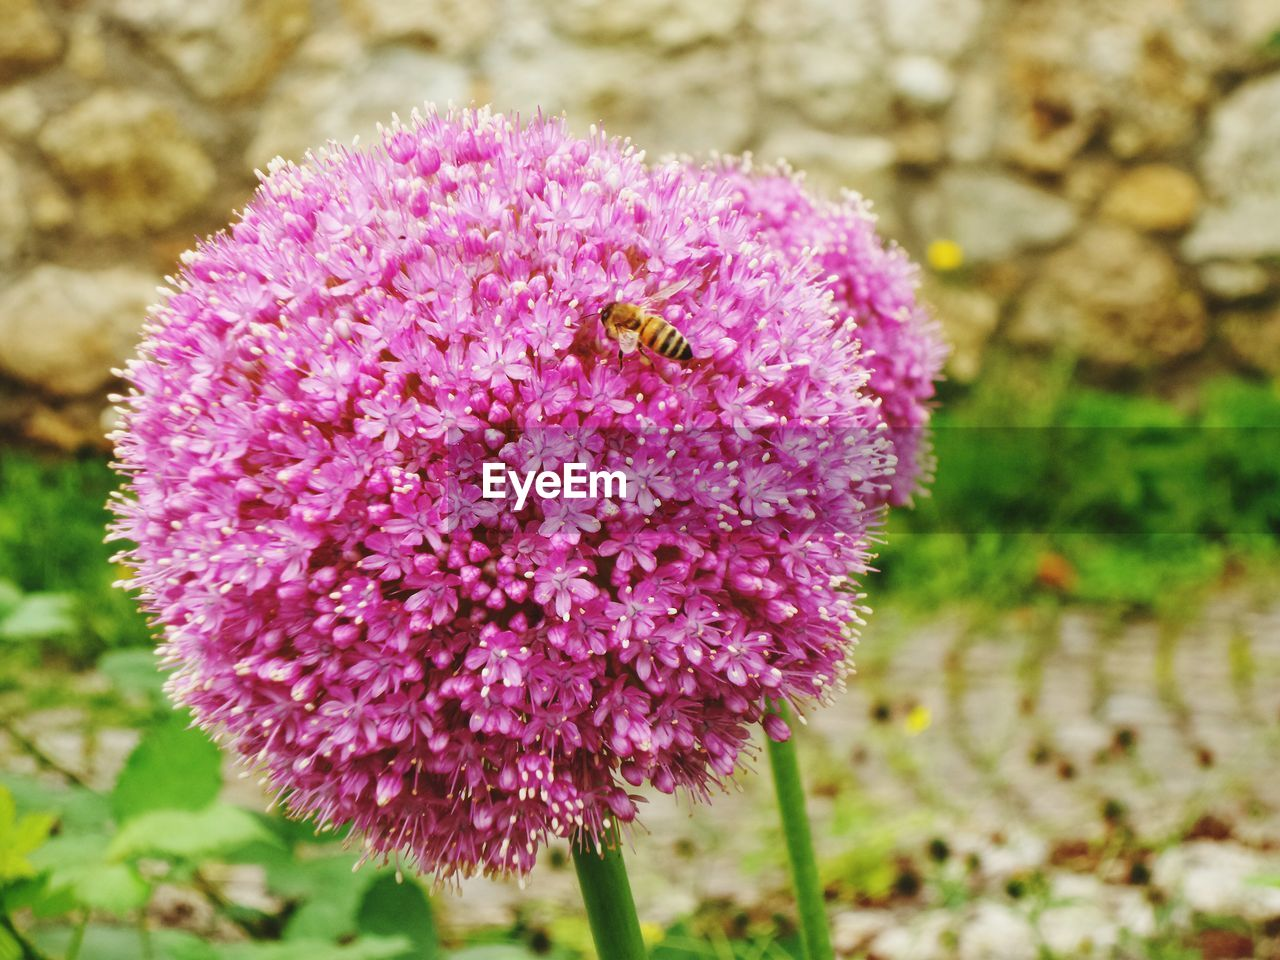 flower, one animal, animal themes, insect, growth, nature, purple, plant, beauty in nature, petal, animals in the wild, fragility, day, no people, focus on foreground, flower head, field, outdoors, close-up, bee, blooming, freshness